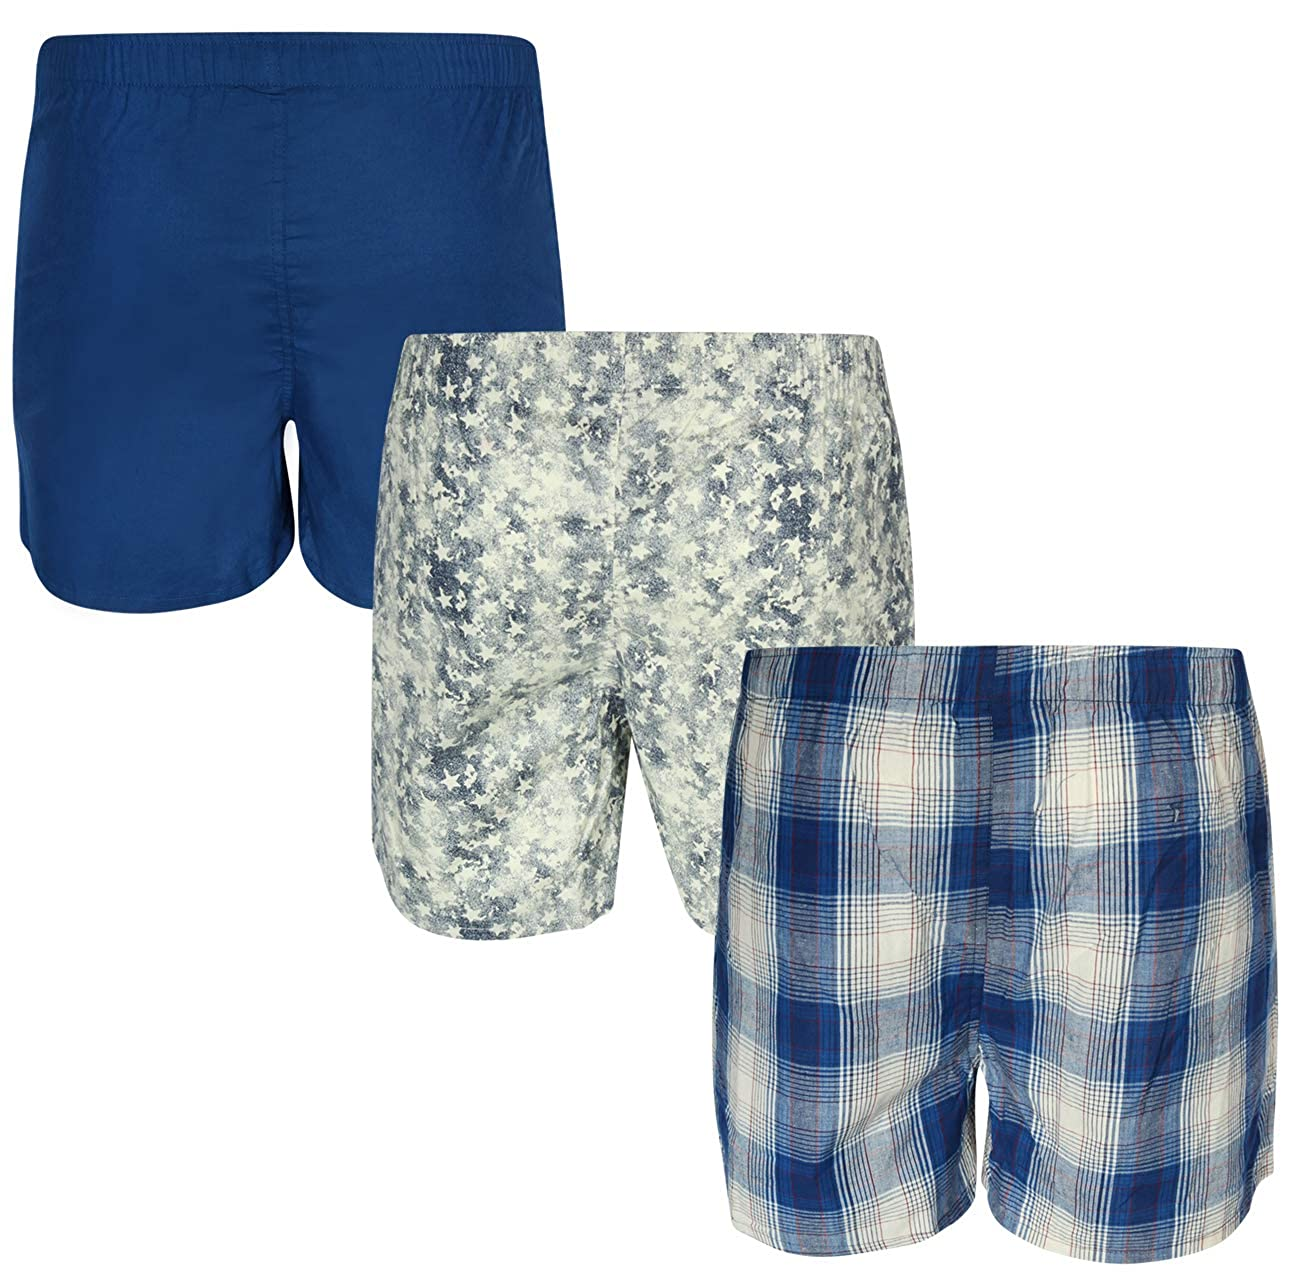 Mens Woven Boxer Underwear with Functional Fly U.S 4 Pack Polo Assn